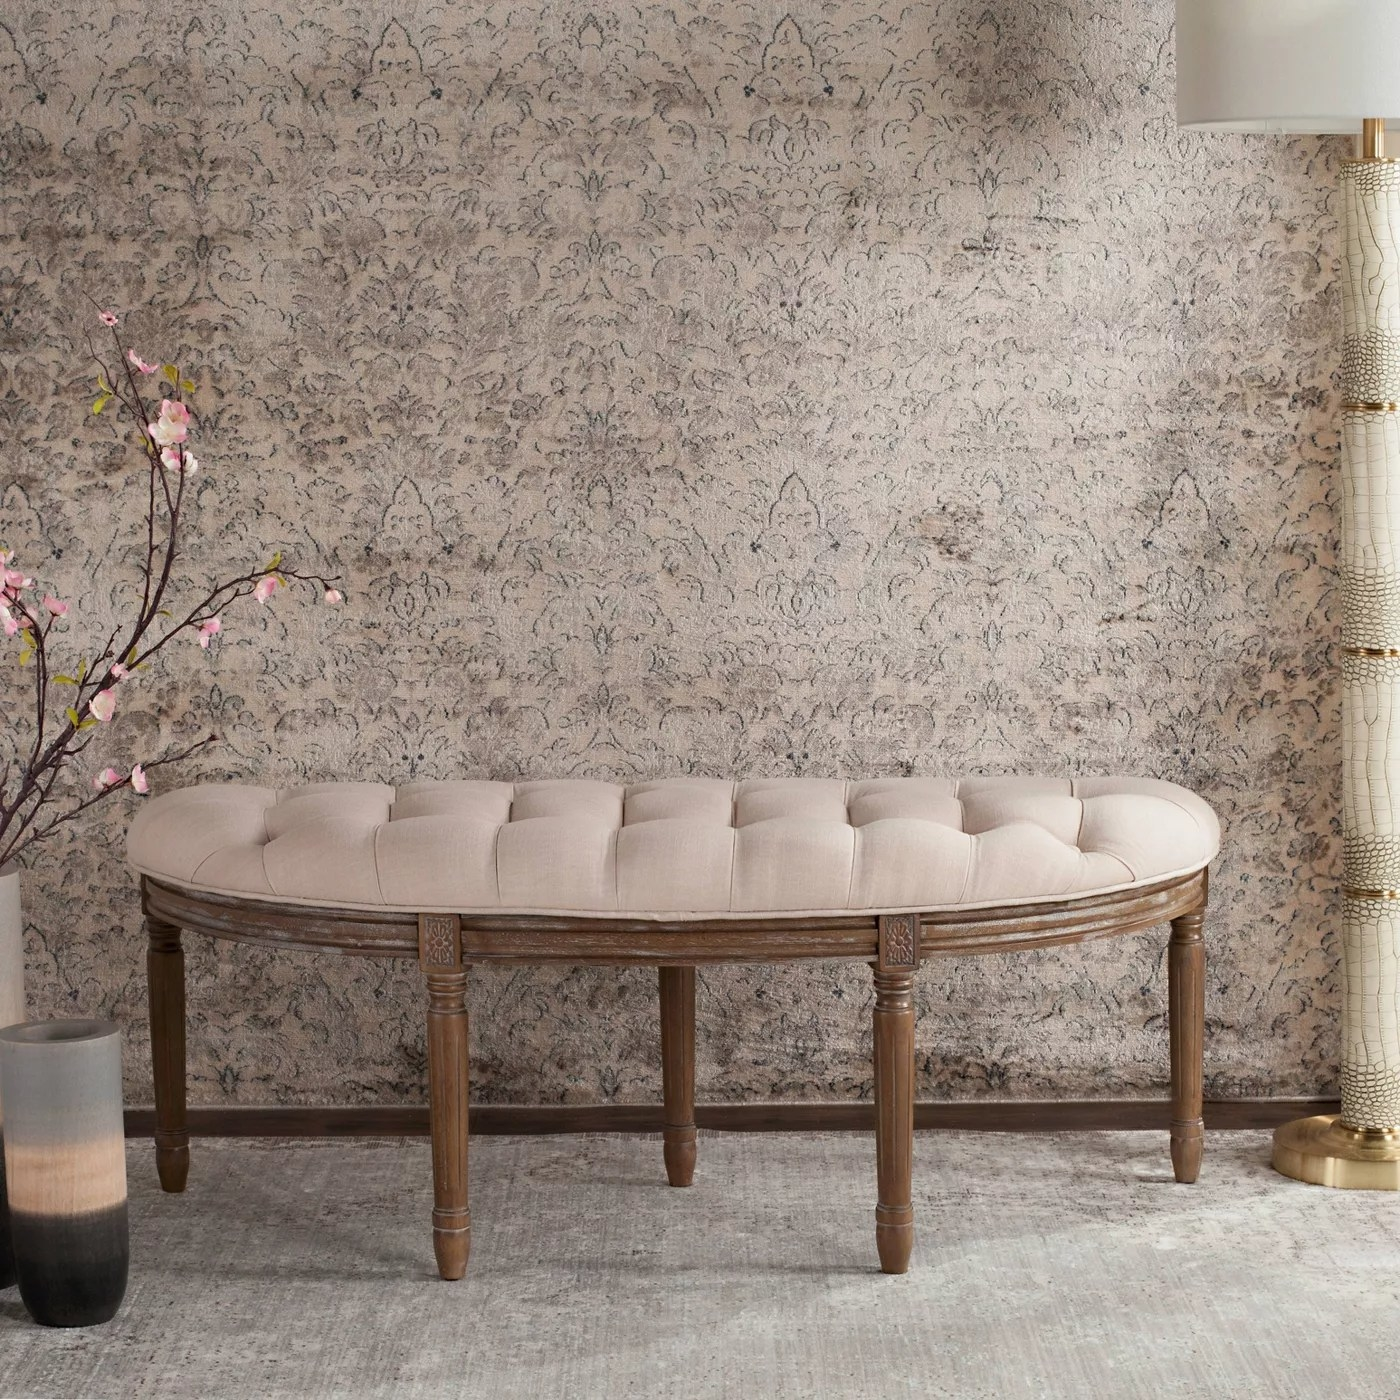 The beige tufted bench